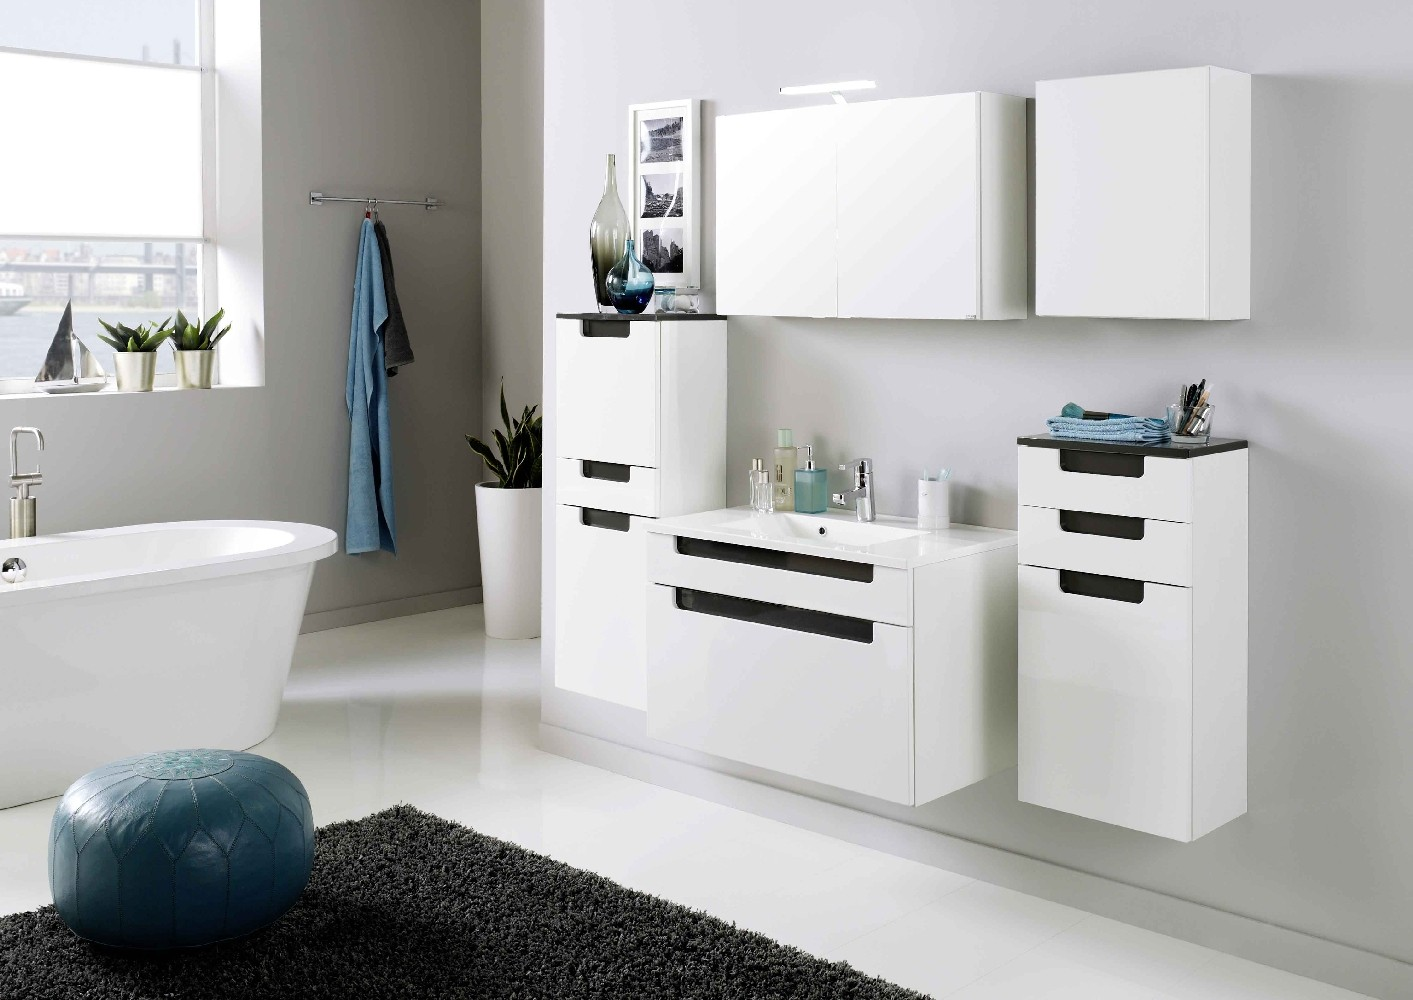 bad waschtisch siena 1 auszug 80 cm breit hochglanz wei anthrazit grau bad waschtische. Black Bedroom Furniture Sets. Home Design Ideas